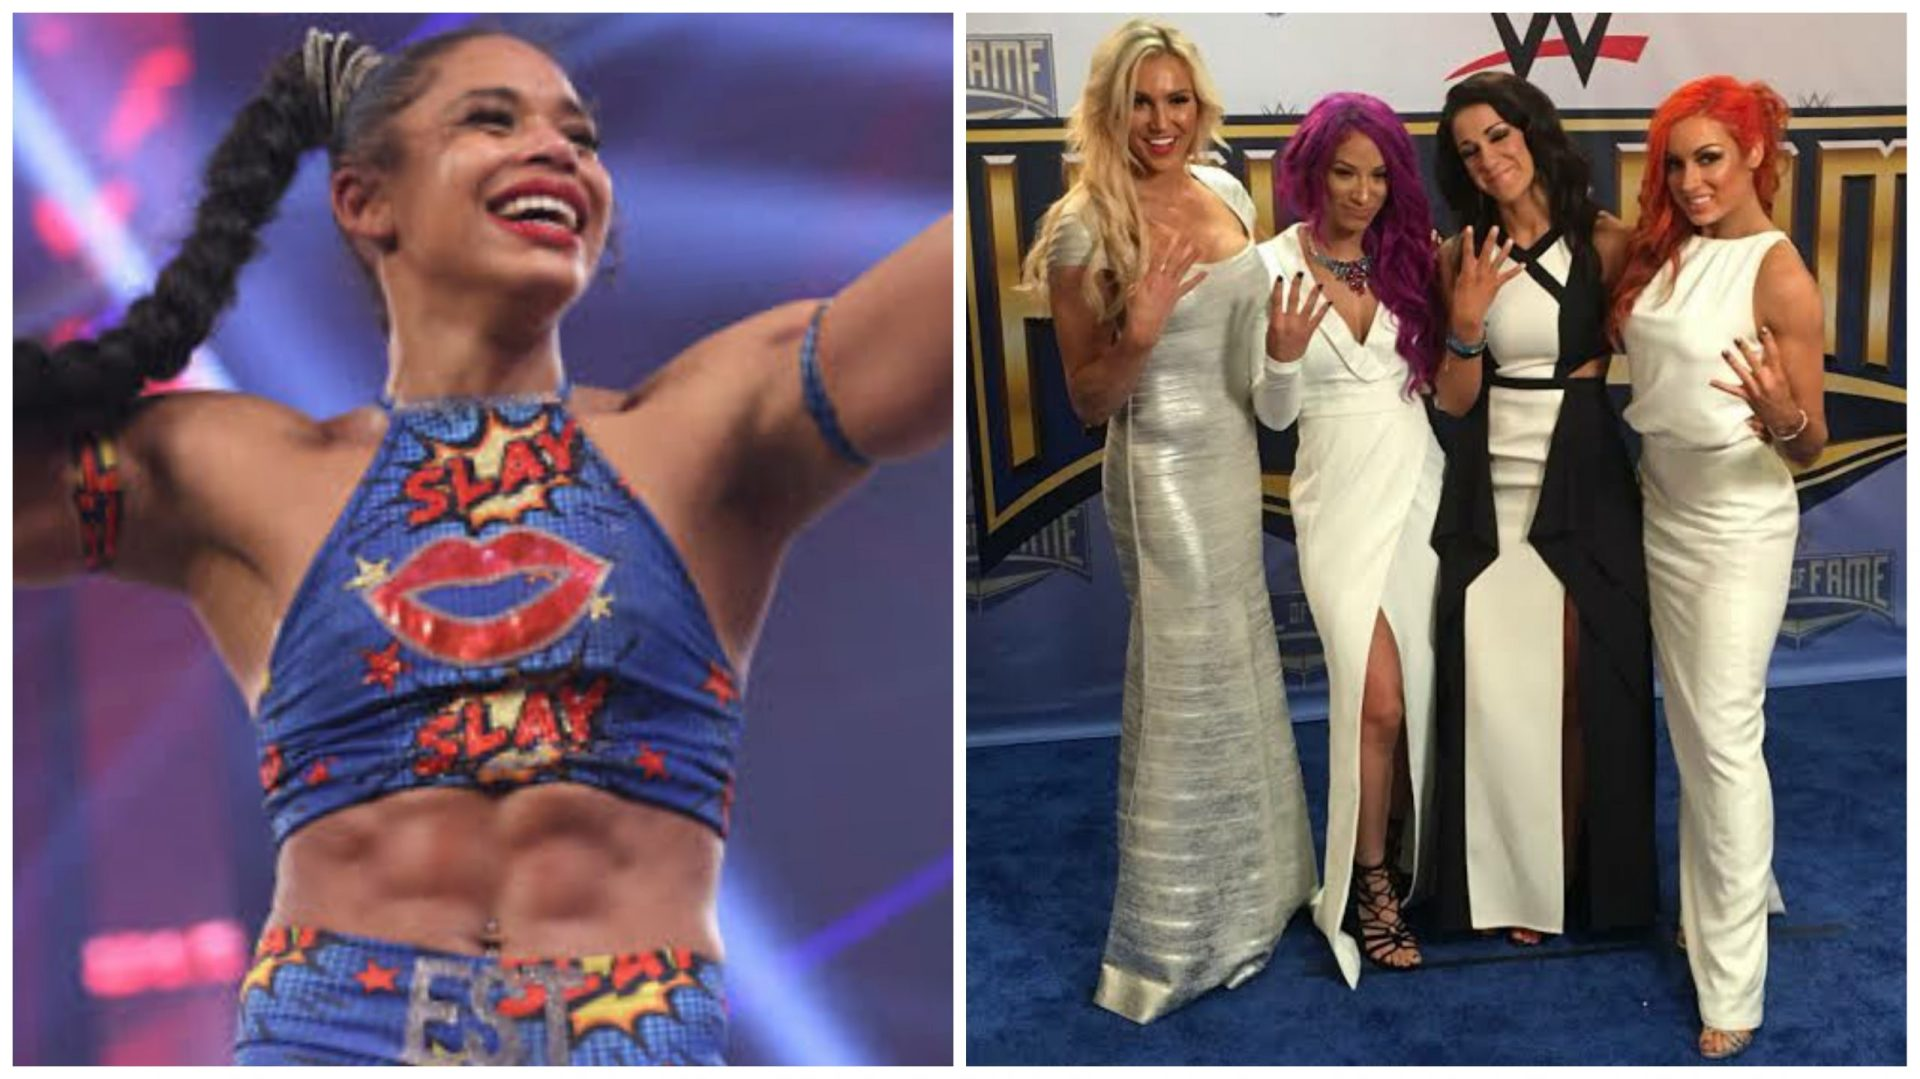 Bianca Belair looks to defeat all members of The Four Horsewomen - THE SPORTS ROOM